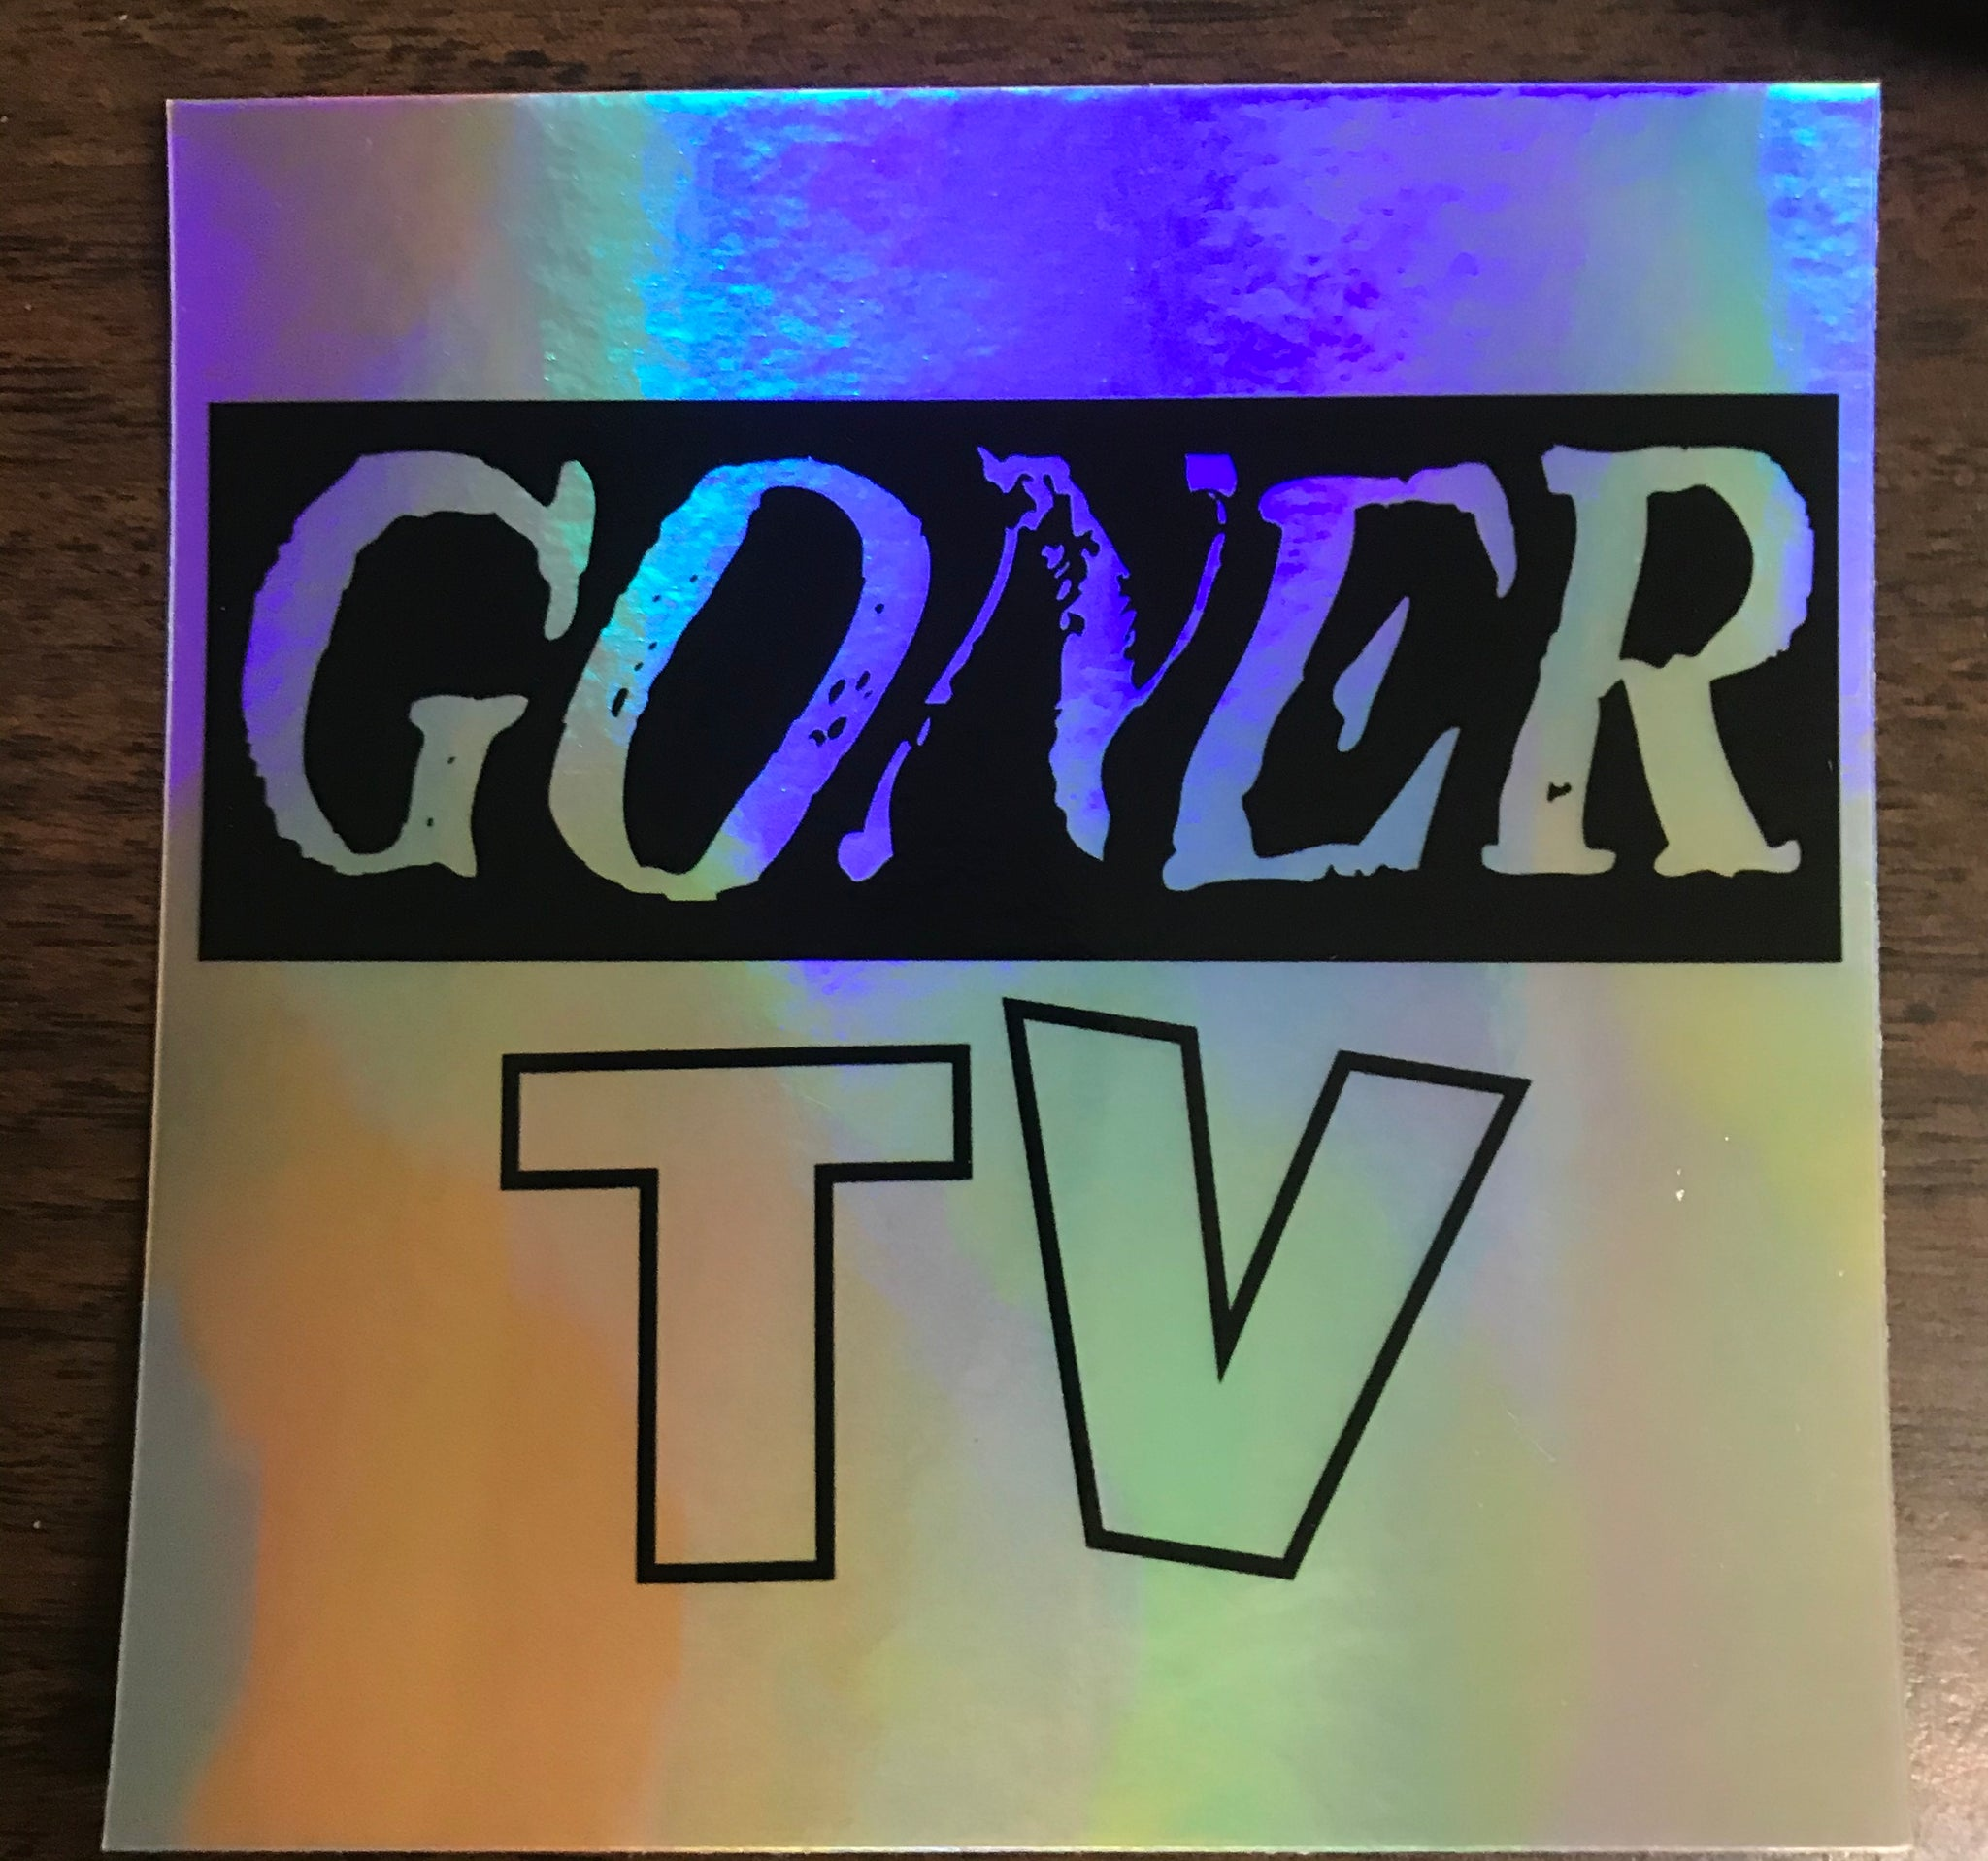 Goner TV Holographic Sticker